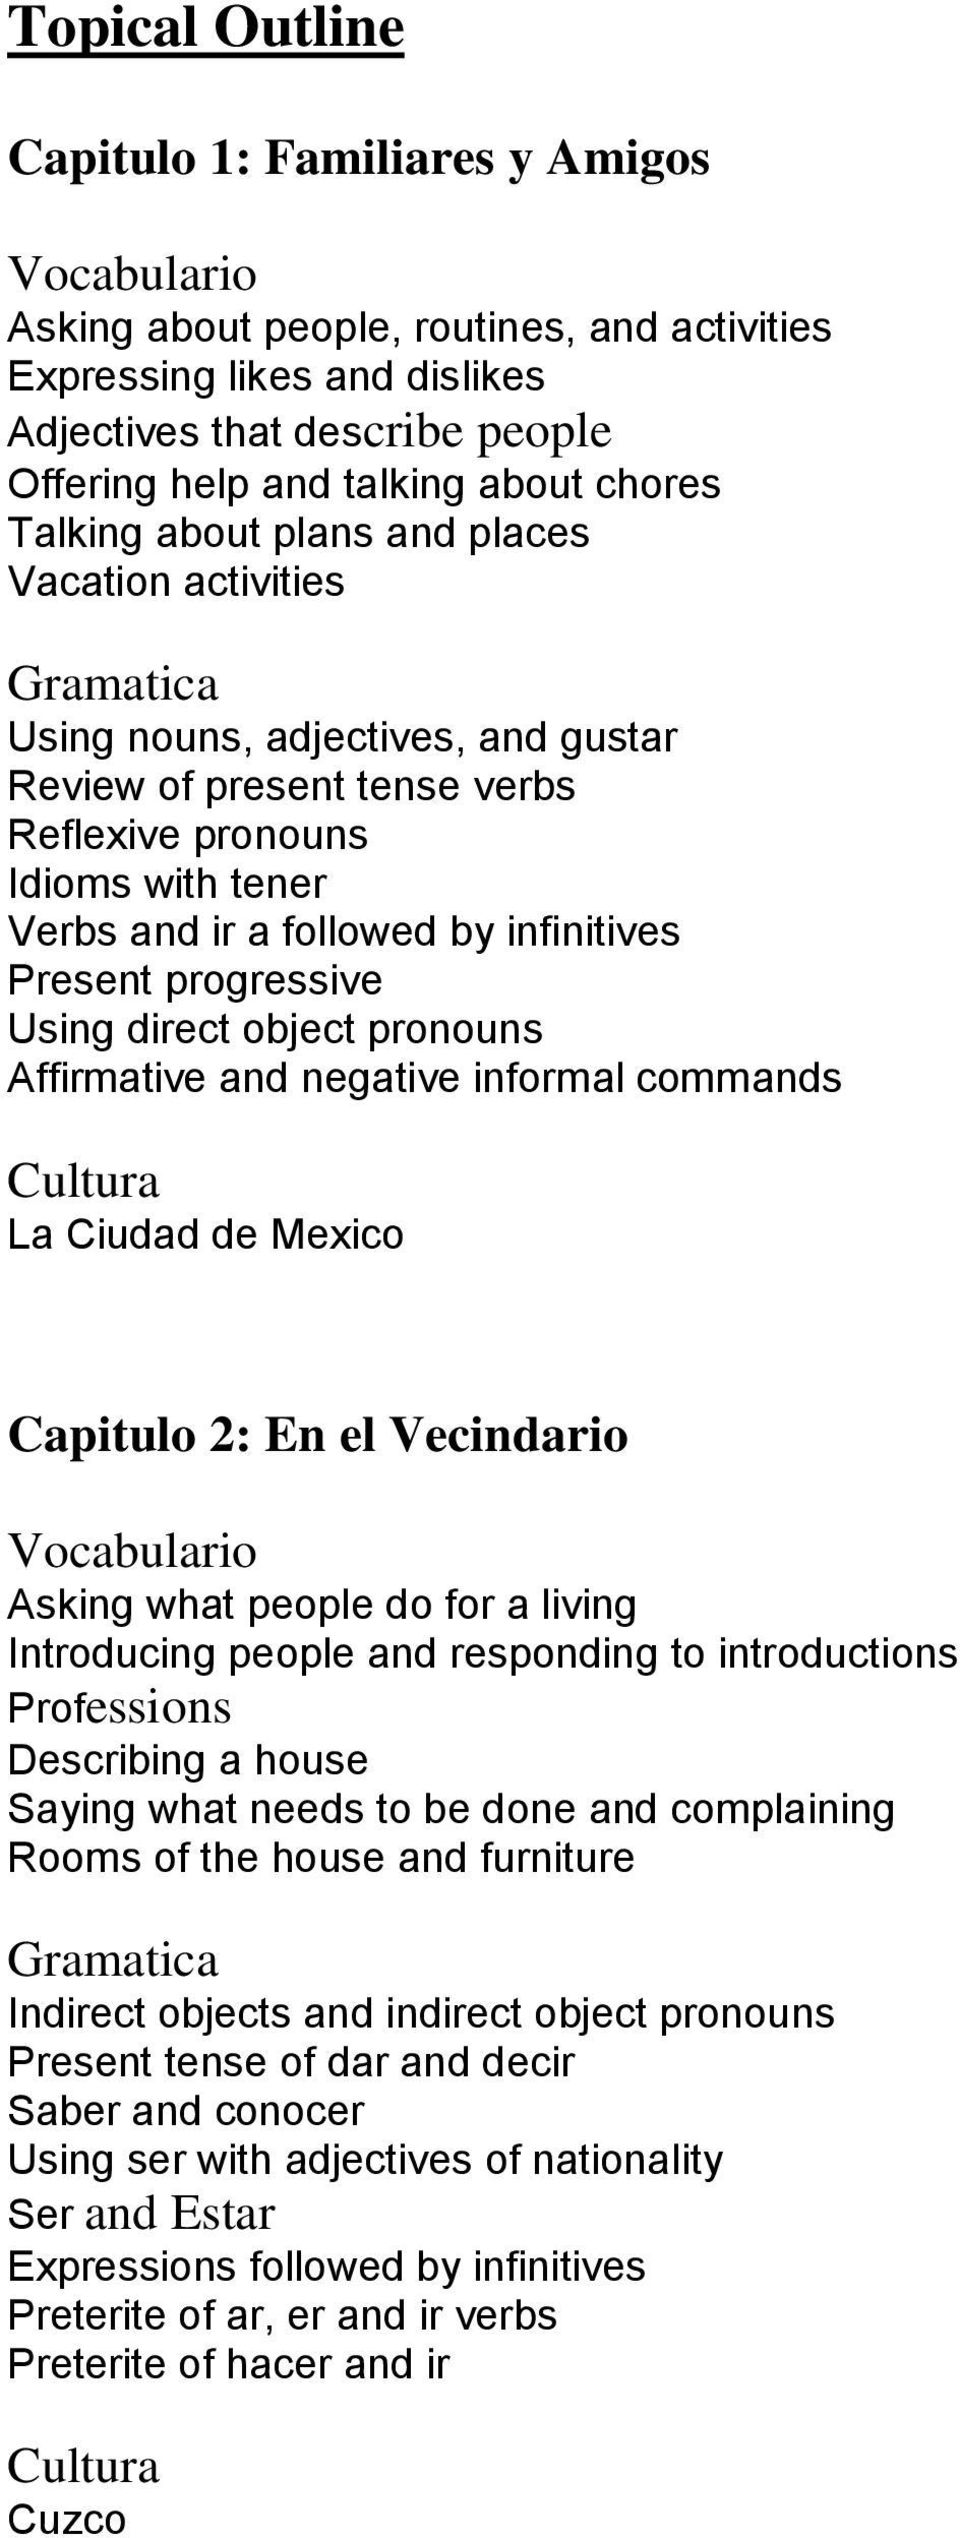 Present progressive Using direct object pronouns Affirmative and negative informal commands La Ciudad de Mexico Capitulo 2: En el Vecindario Asking what people do for a living Introducing people and